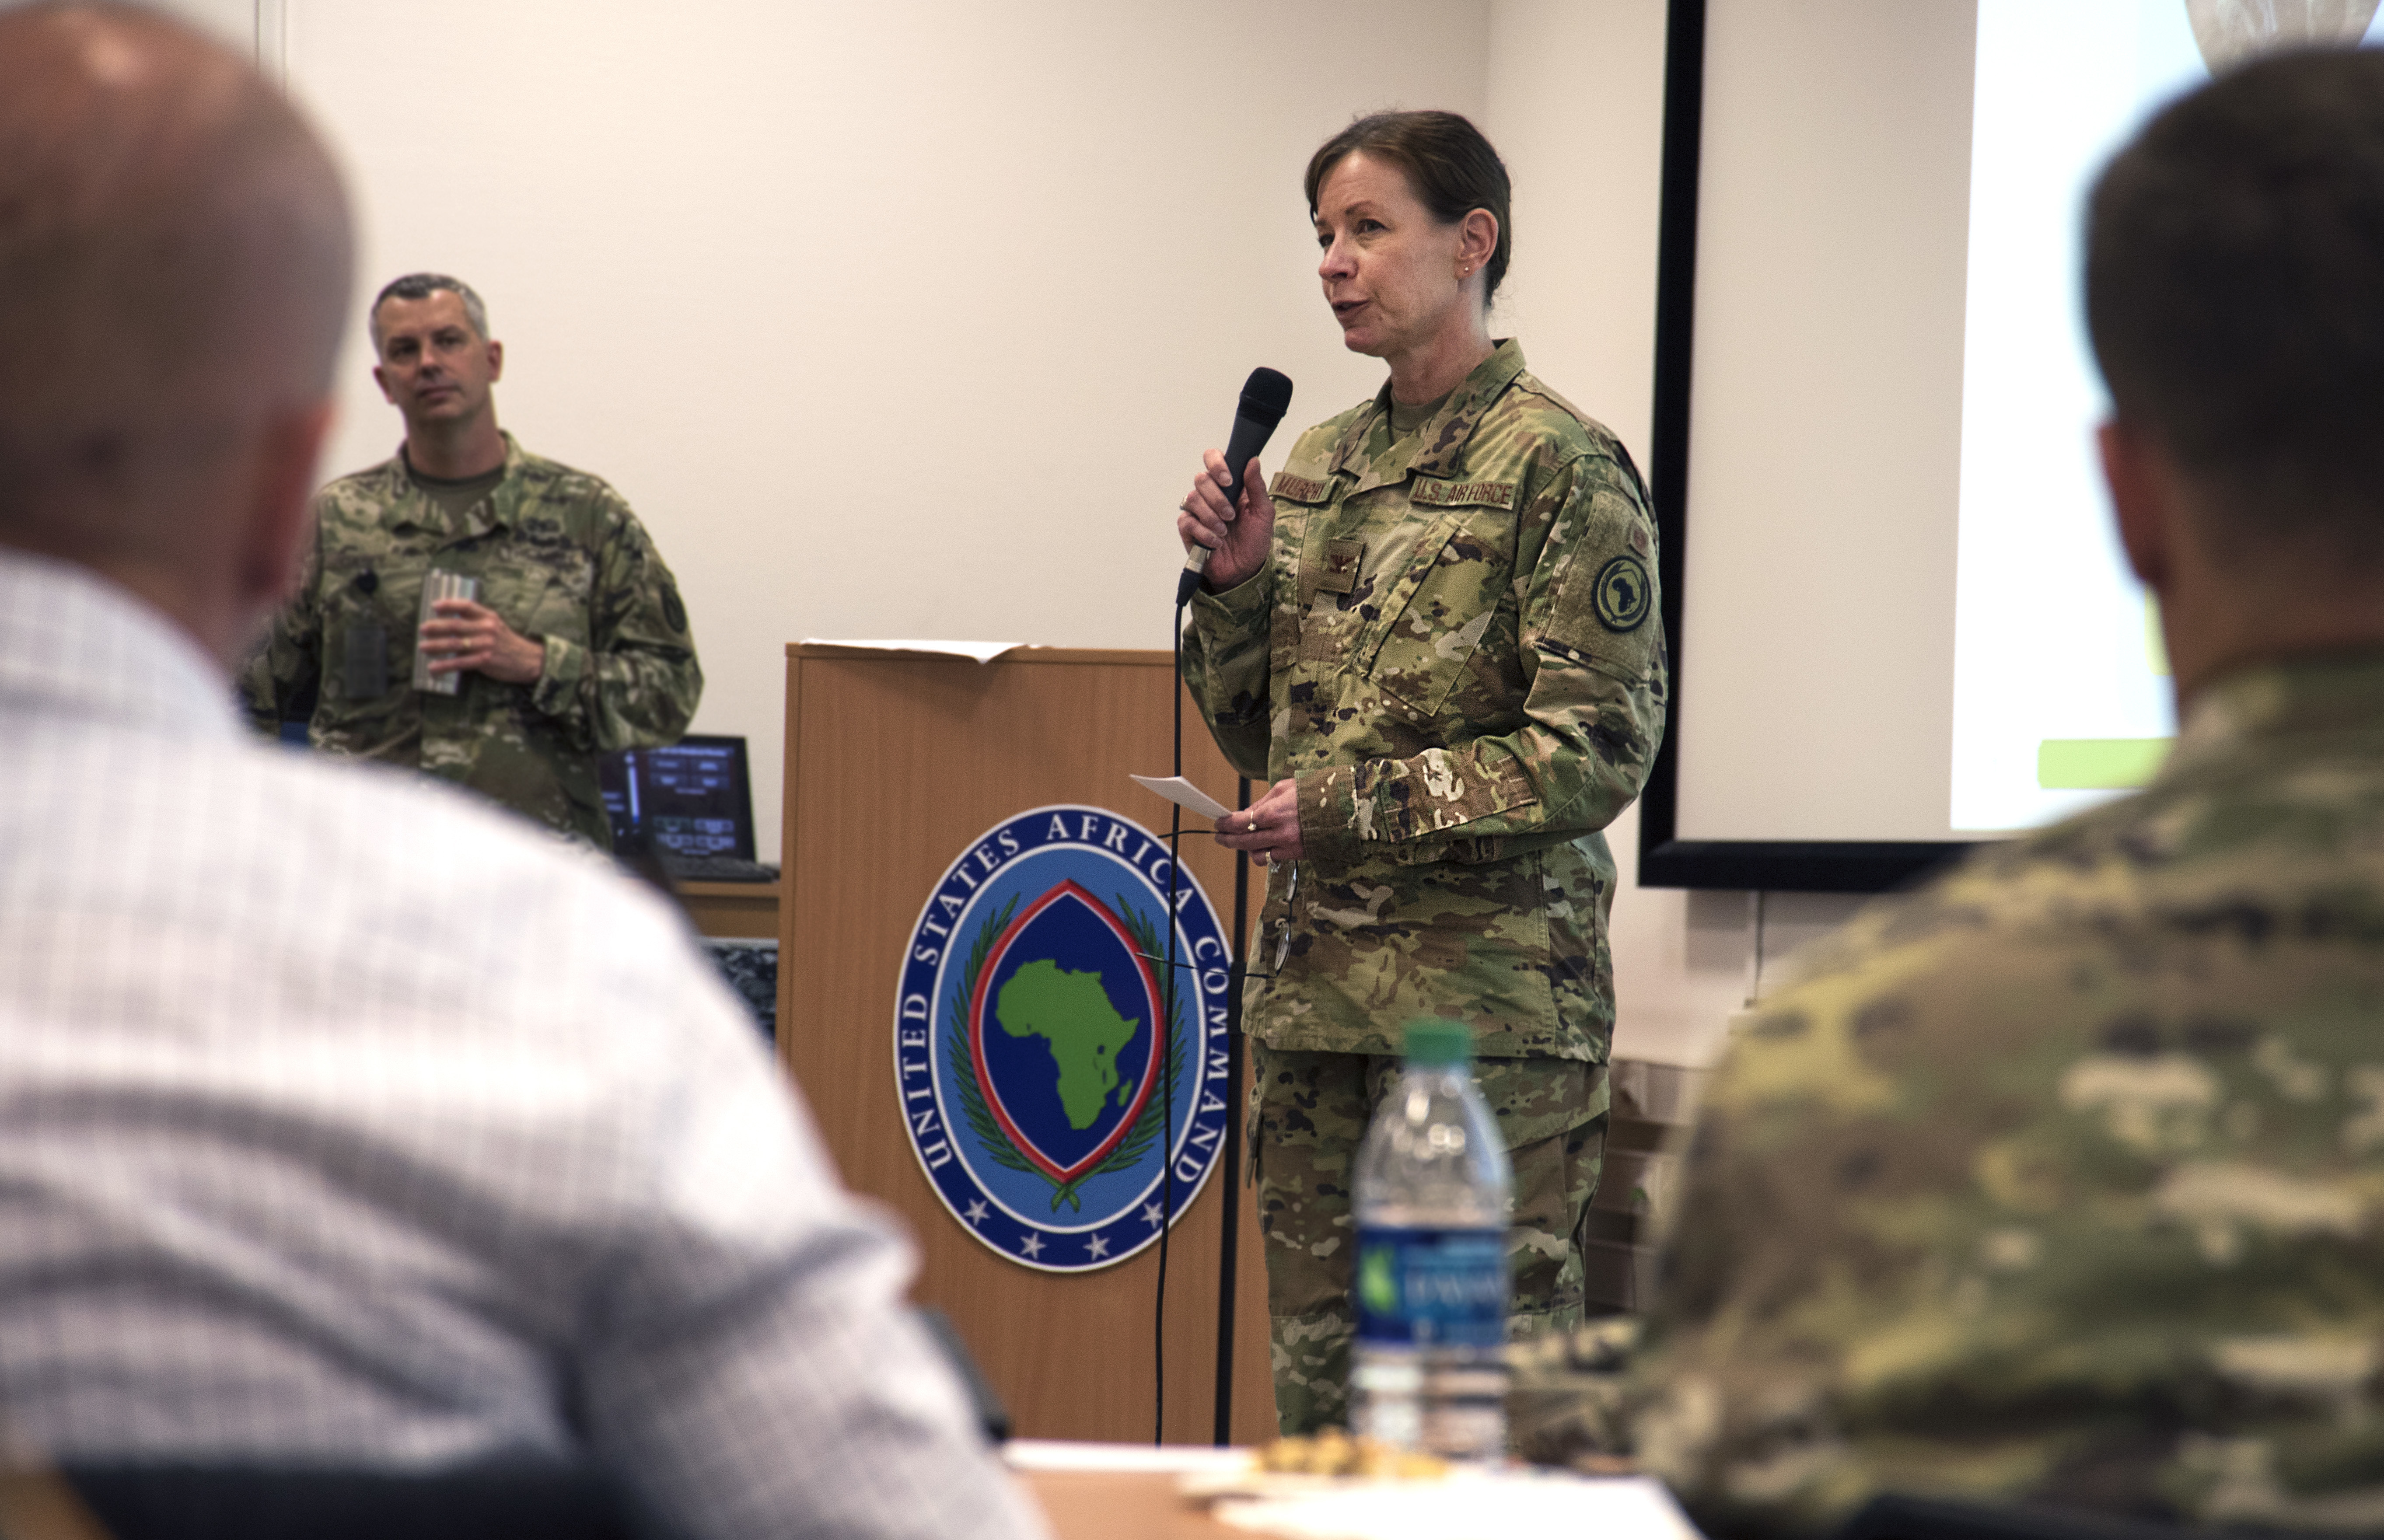 Air Force Col. Krystal Murphy, acting AFRICOM command surgeon, speaks to attendees of the 2019 U.S. Africa Command Command Surgeon Synchronization Conference May 28, 2019 in Stuttgart, Germany. Murphy talked about the importance of building relationships during the conference. (U.S. Navy photo by Mass Communication Specialist 1st Class Christopher Hurd/Released)